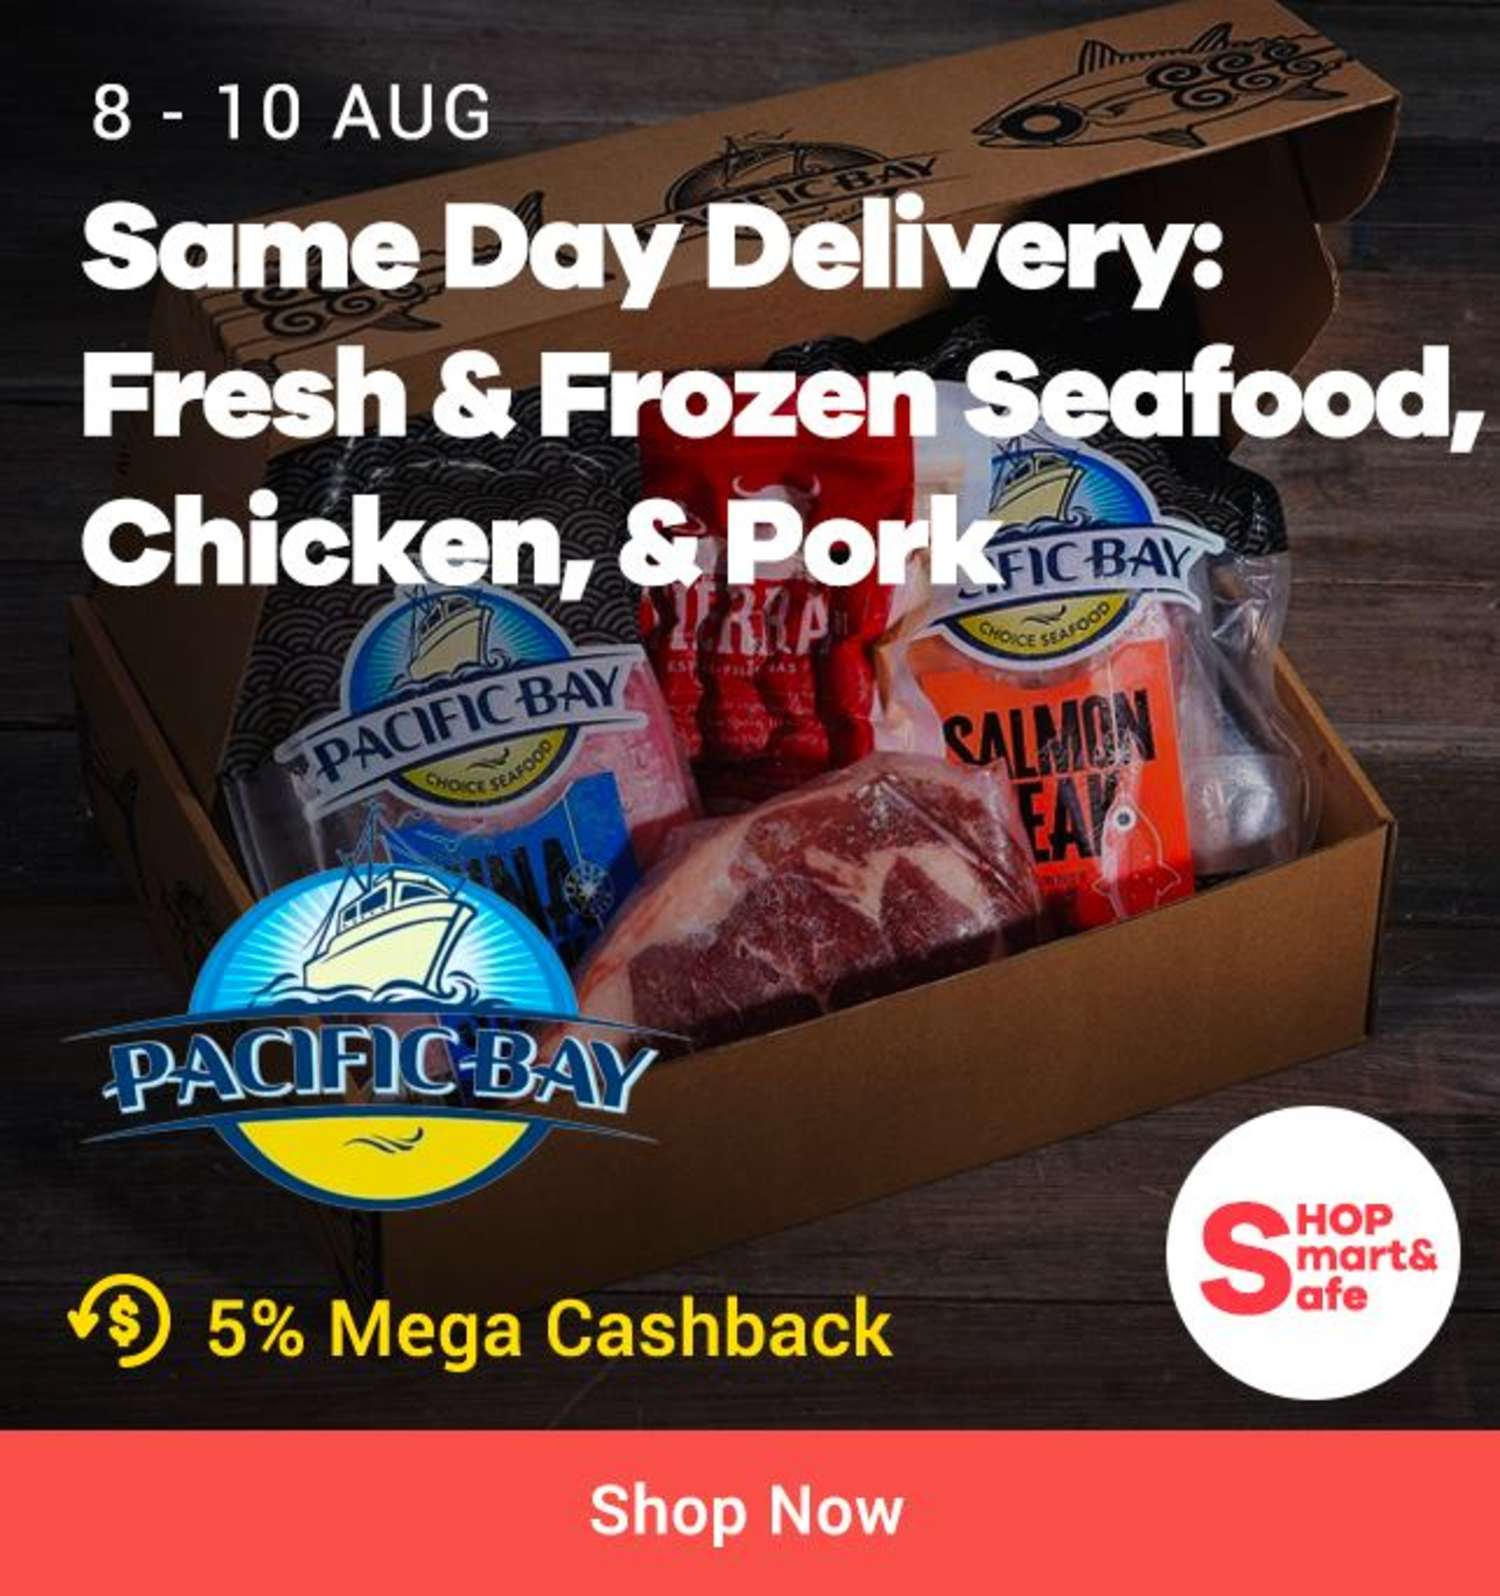 Pacific Bay: Same Day Delivery Fresh & Frozen Seafood Chicken